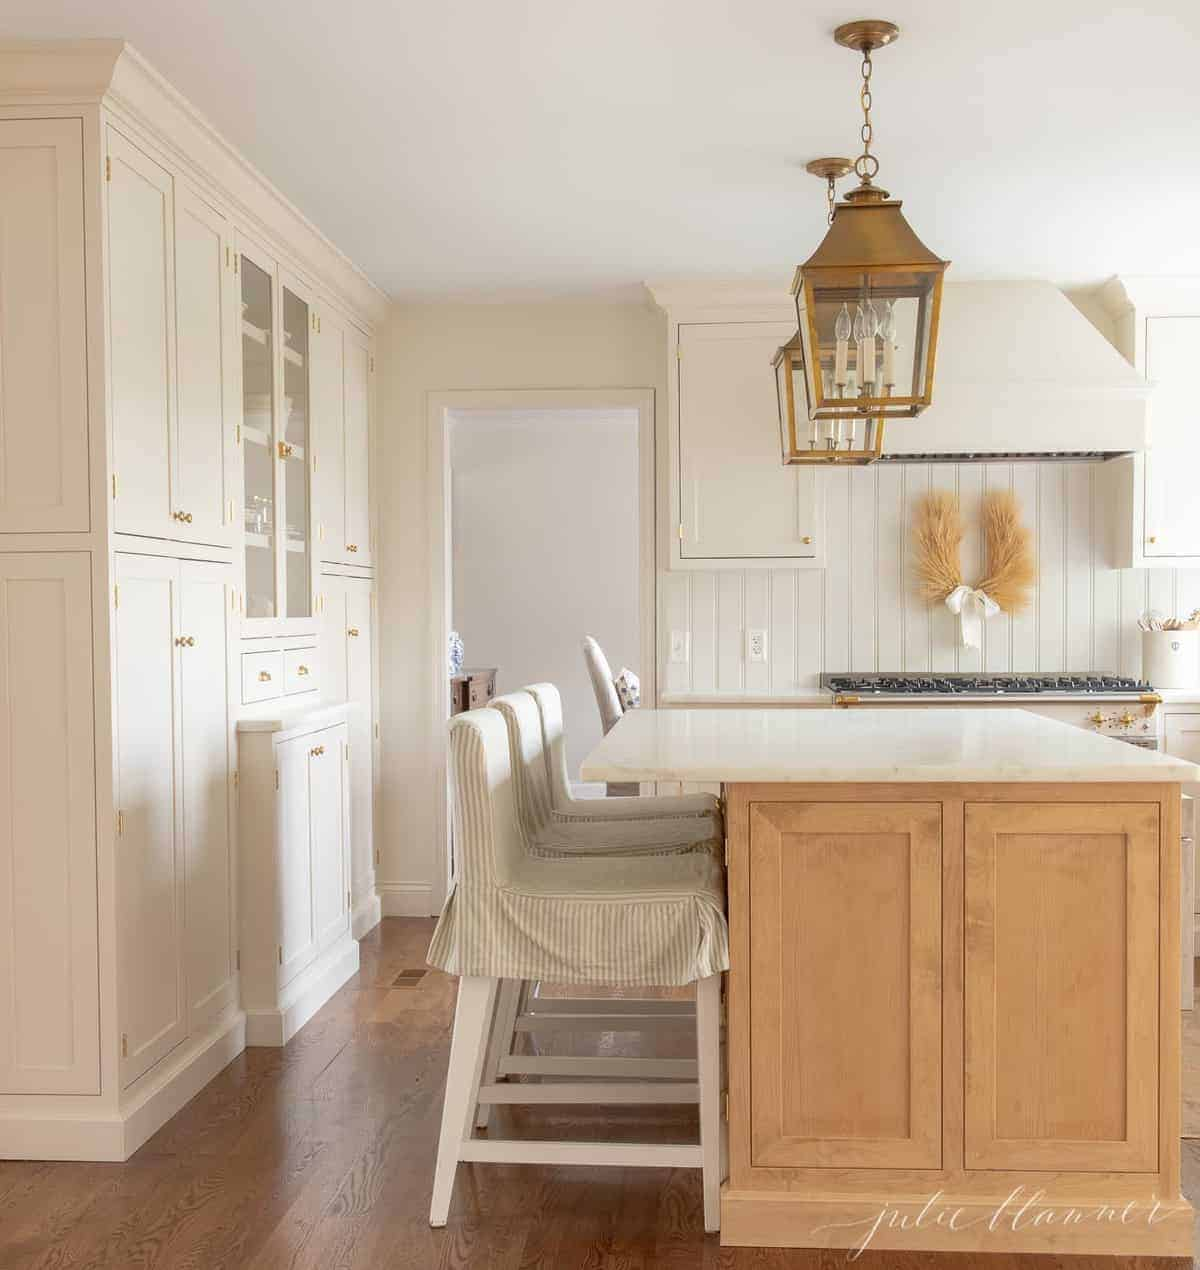 A white and wood kitchen with white beadboard.